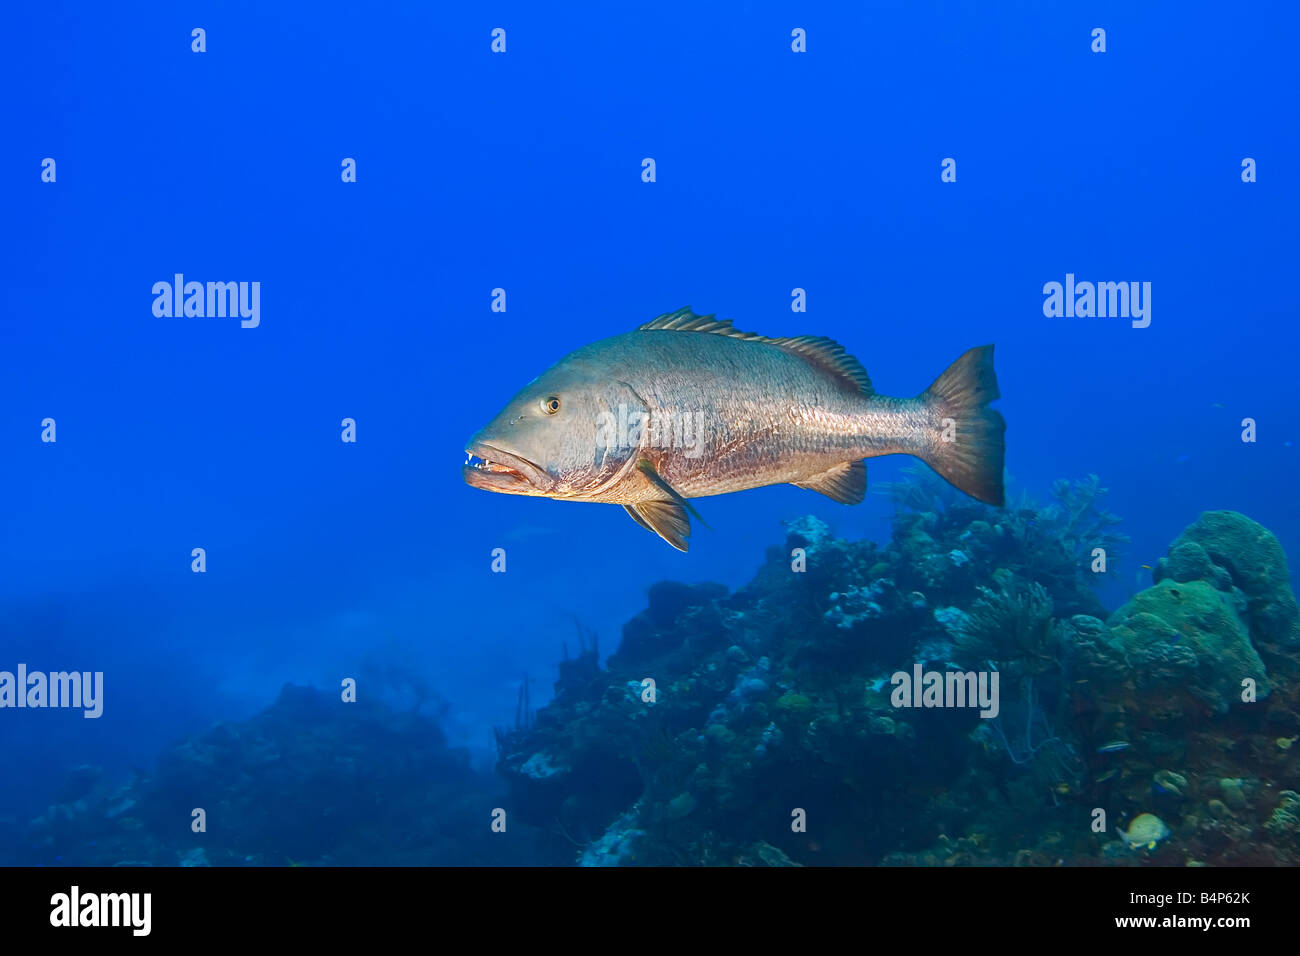 cubera snapper, Lutjanus cyanopterus, large adult, over 5 feet long, weighing over 100 plus pounds, vulnerable species, - Stock Image